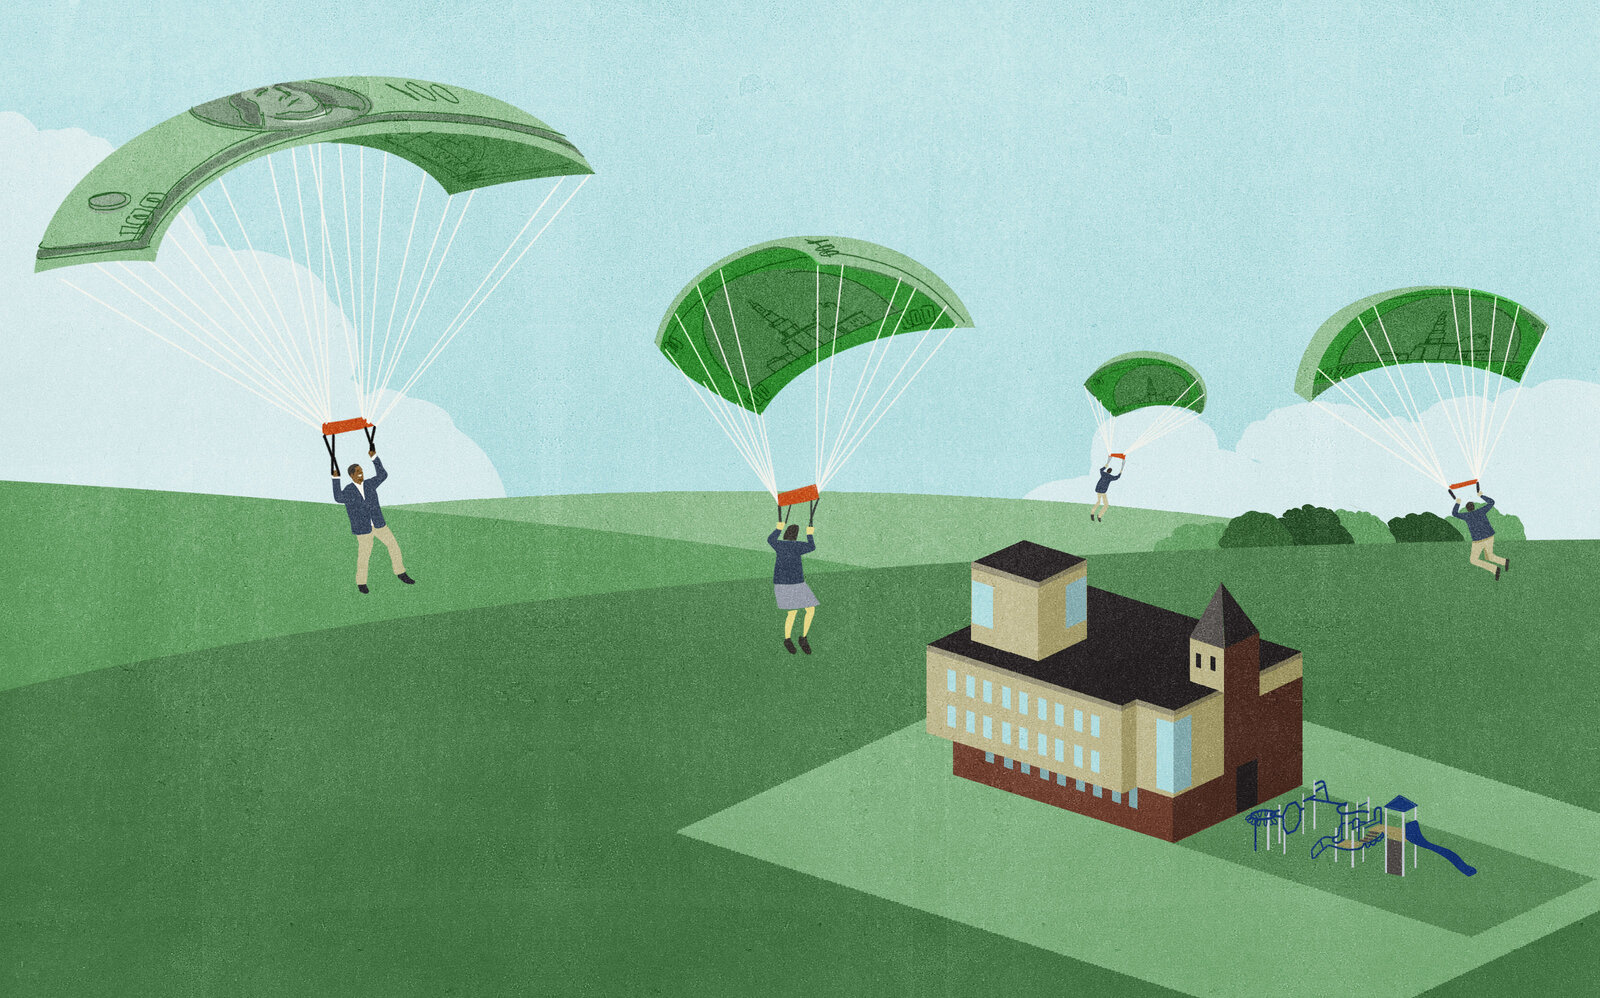 Kids parachuting into a private school with voucher money